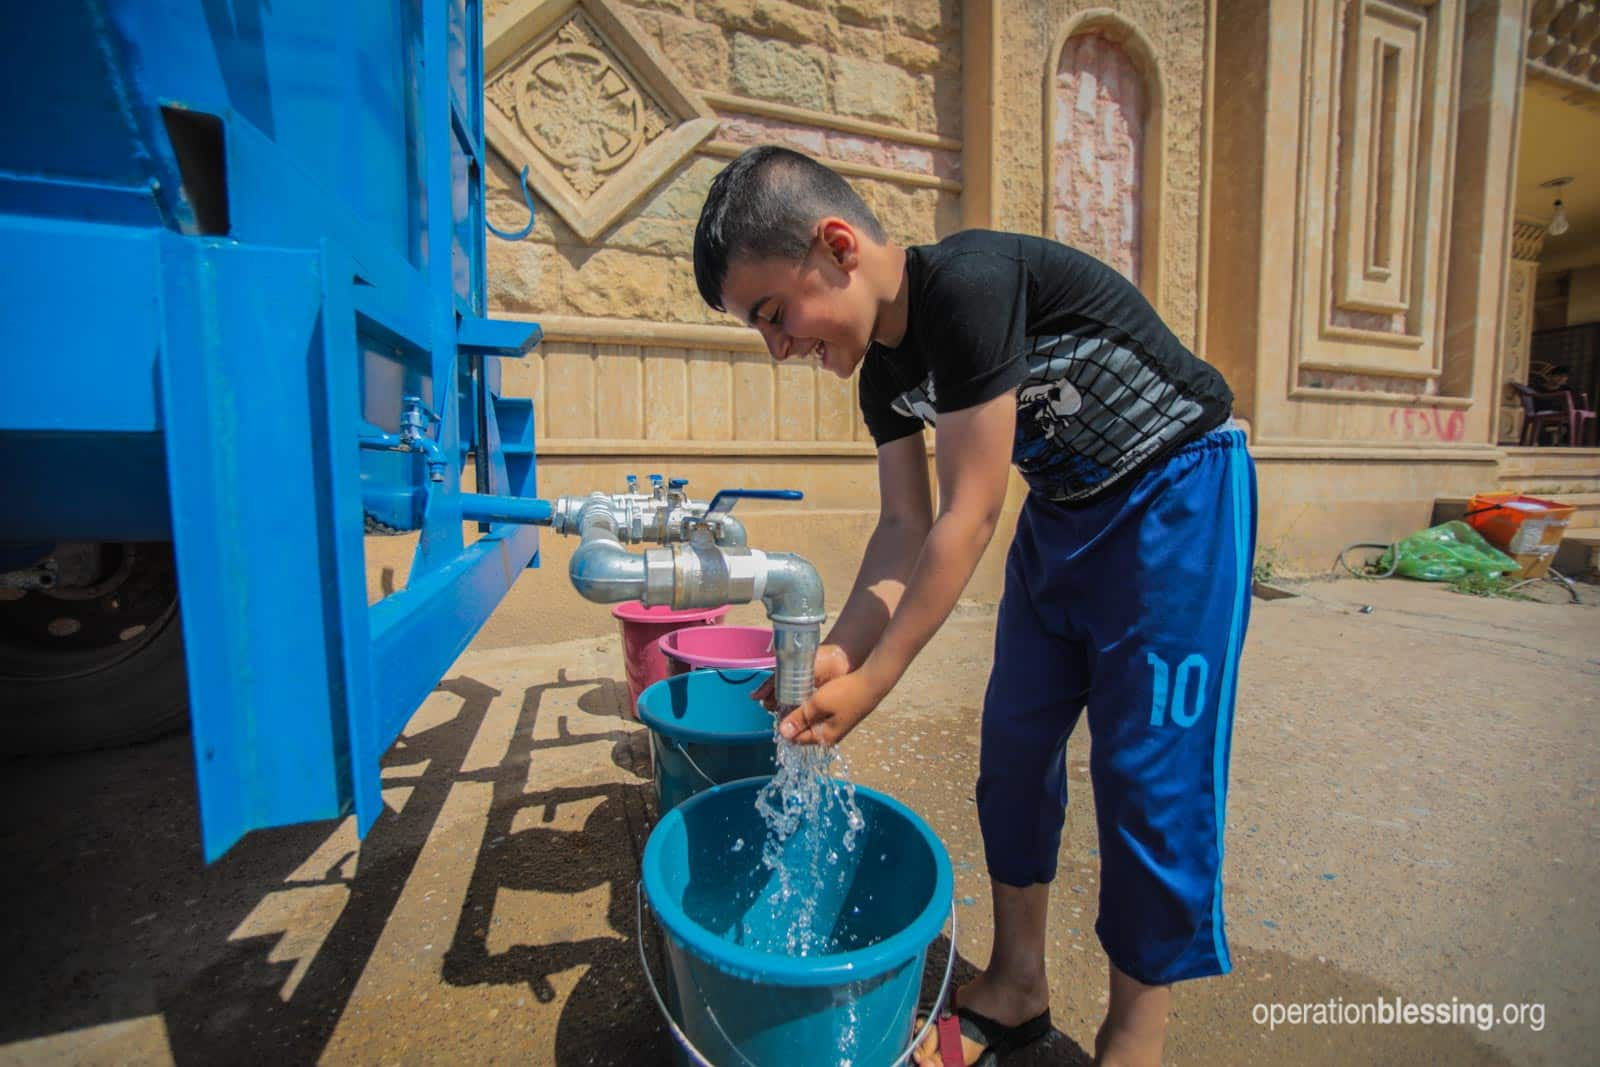 A boy collects water from the Operation Blessing-provided tap.